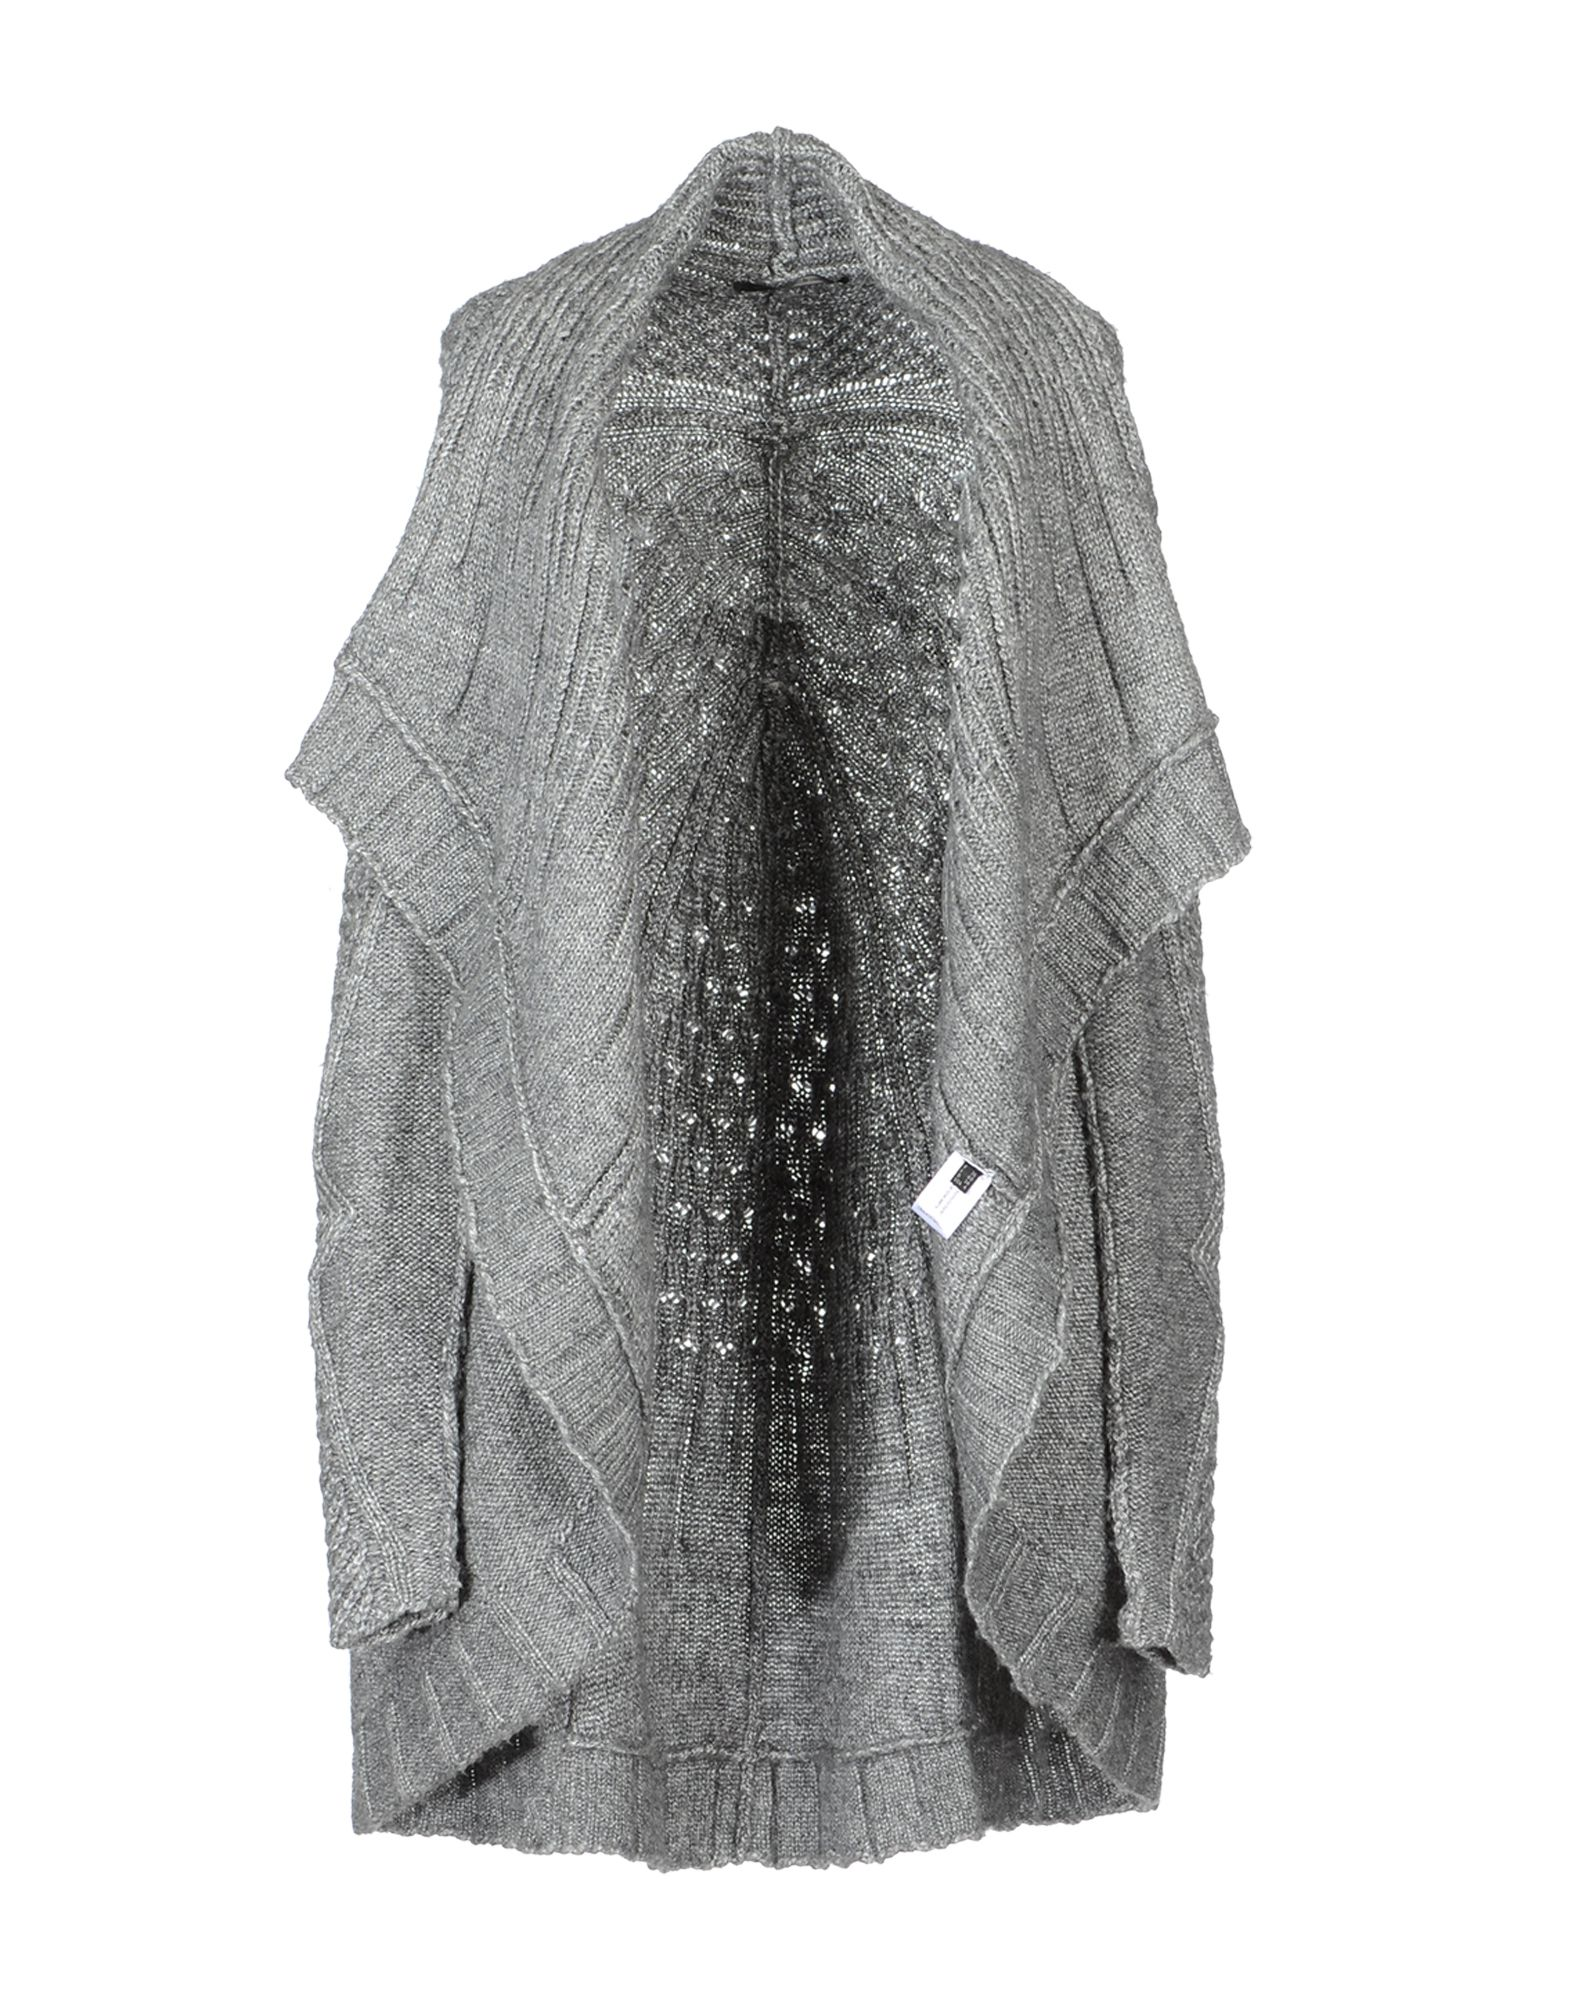 marith et fran ois girbaud cardigan in gray lyst. Black Bedroom Furniture Sets. Home Design Ideas